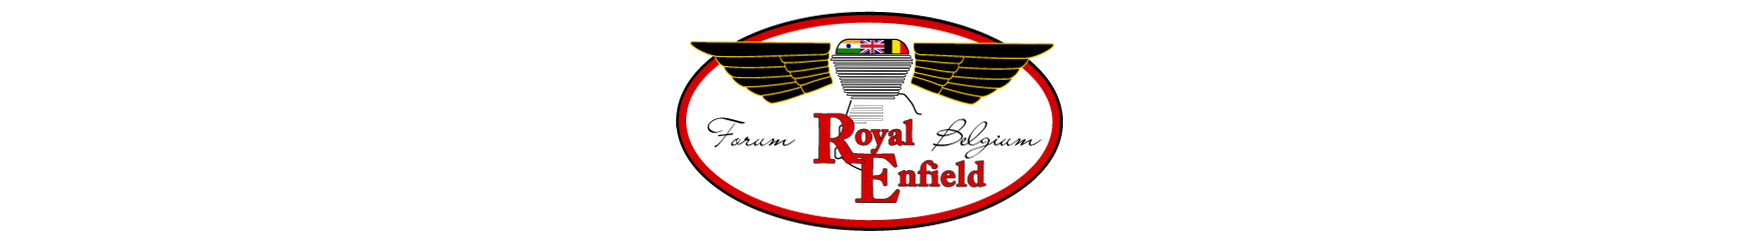 Royal Enfield Forum - Drive And Enjoy